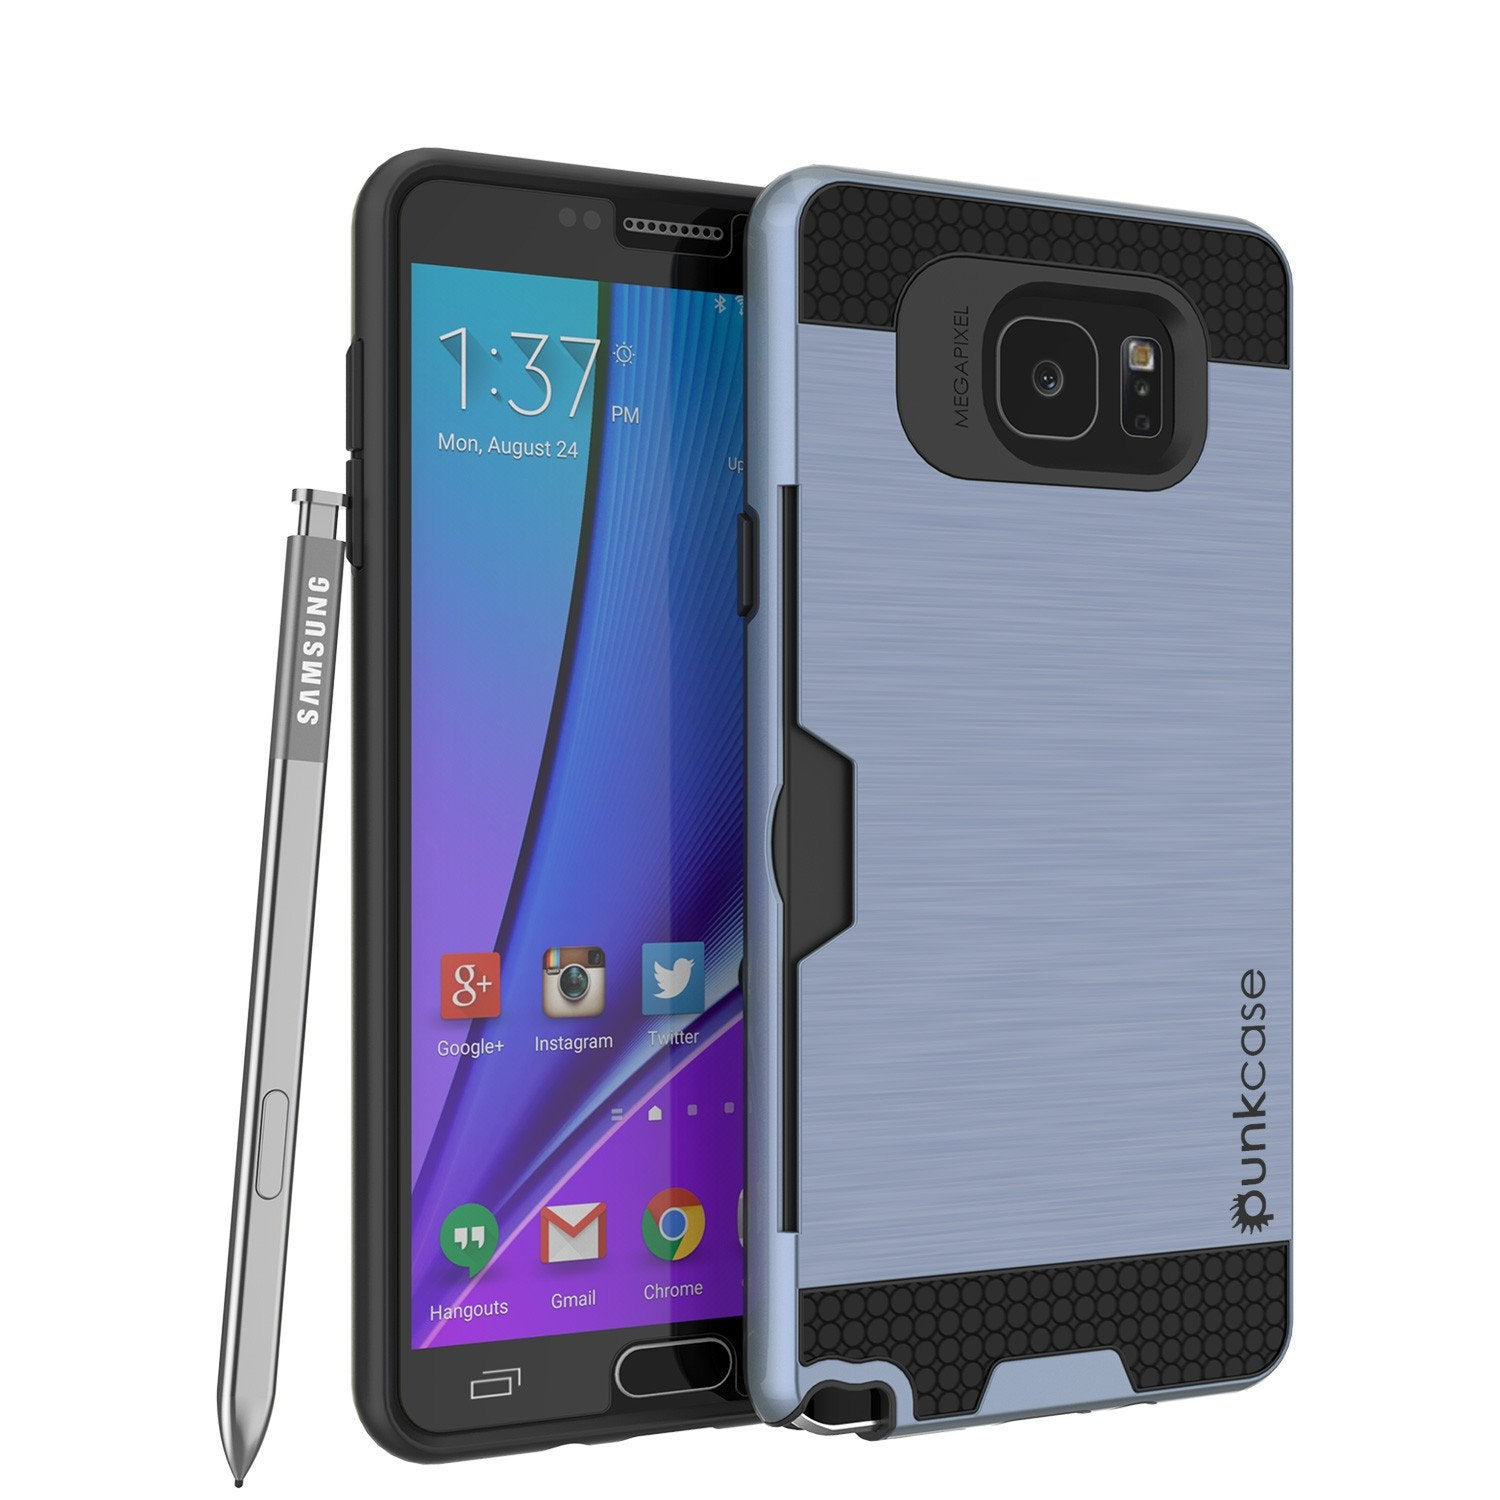 Galaxy Note 5 Case PunkCase SLOT Navy Series Slim Armor Soft Cover Case w/ Tempered Glass